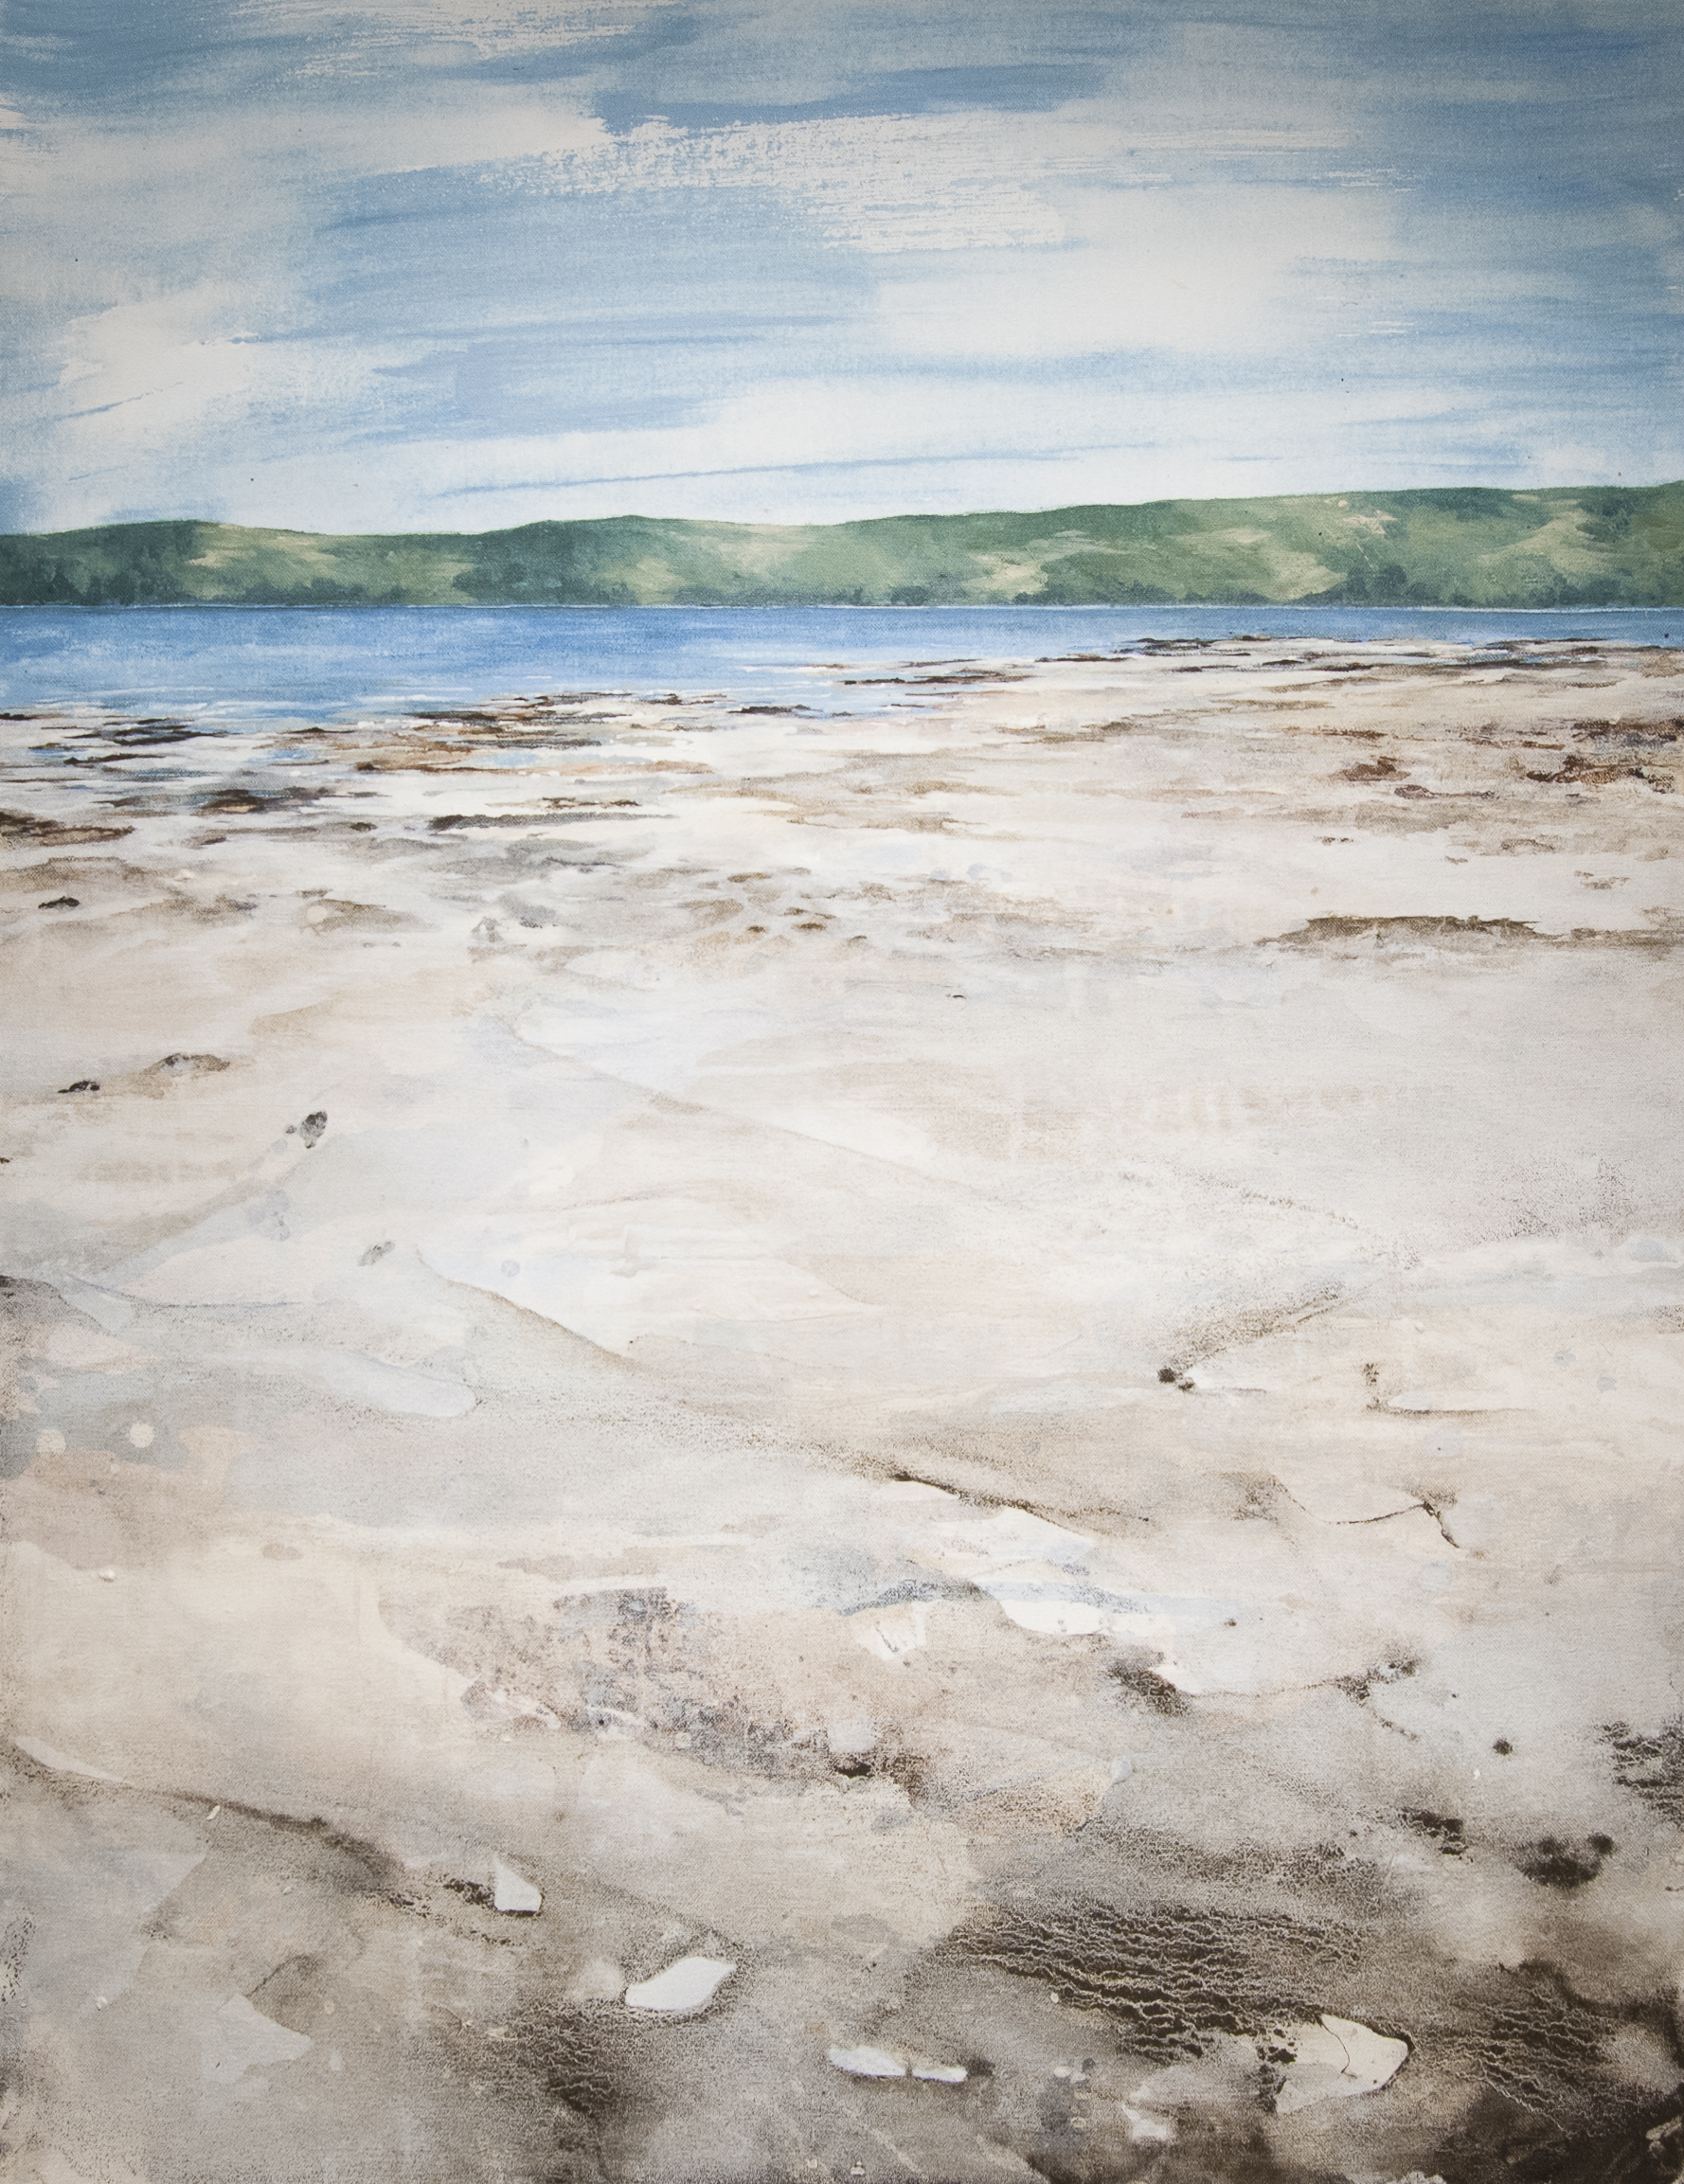 West Coast of Scottish Islands Oil and acrylic on canvas 29.9 x 29.9 in. (27.5 x 35.4 cm) GCM0005   ENQUIRE ABOUT THIS WORK